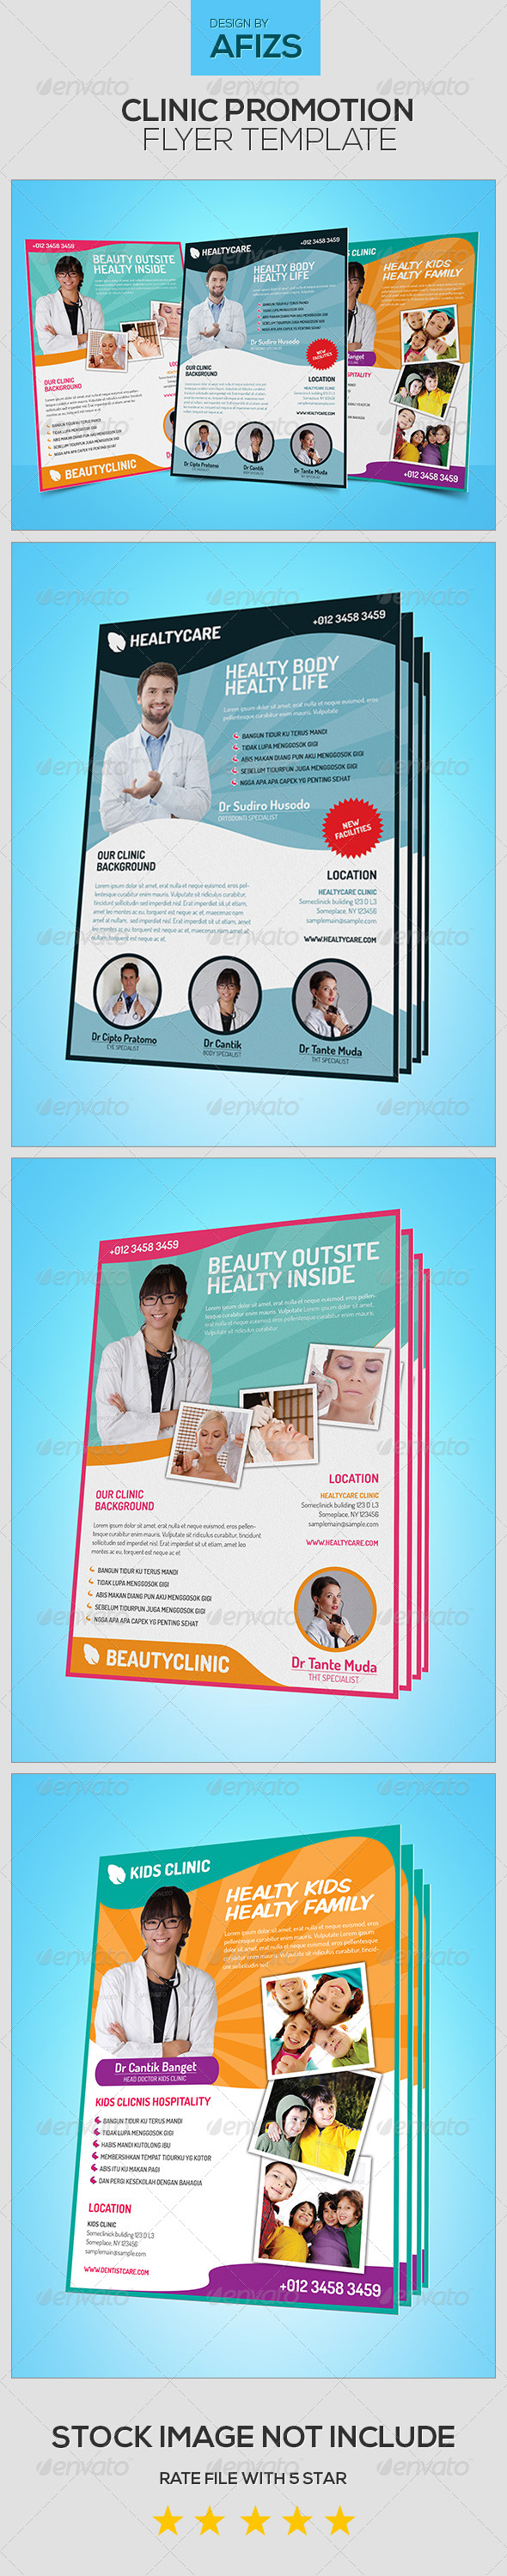 GraphicRiver Clinic Promotion Flyer 5522759